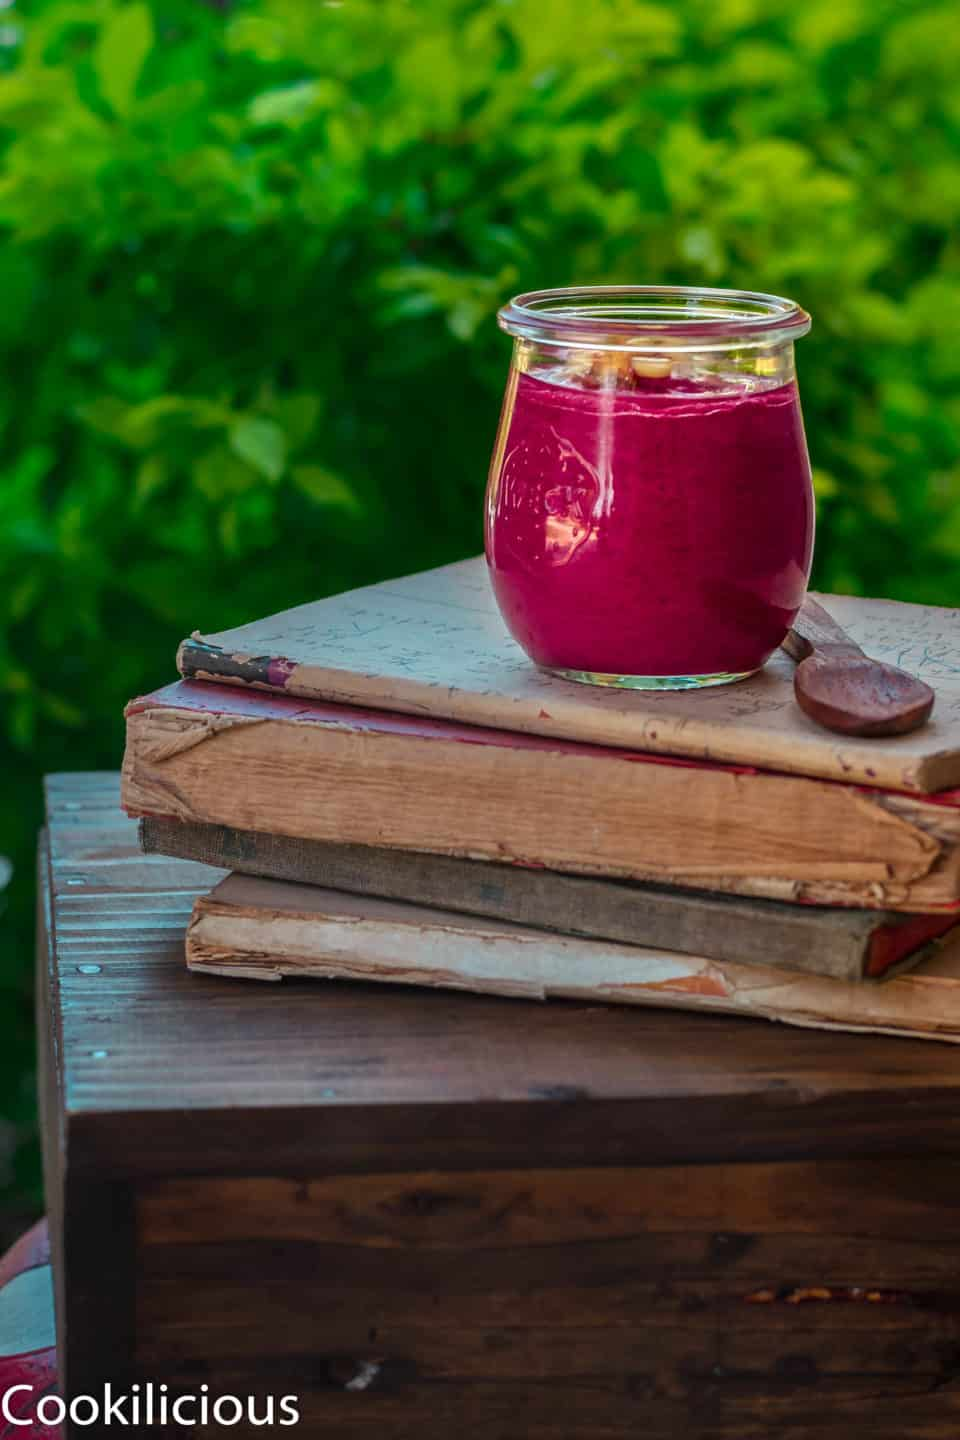 a jar of beetroot pesto placed over a pile of books in the outdoors